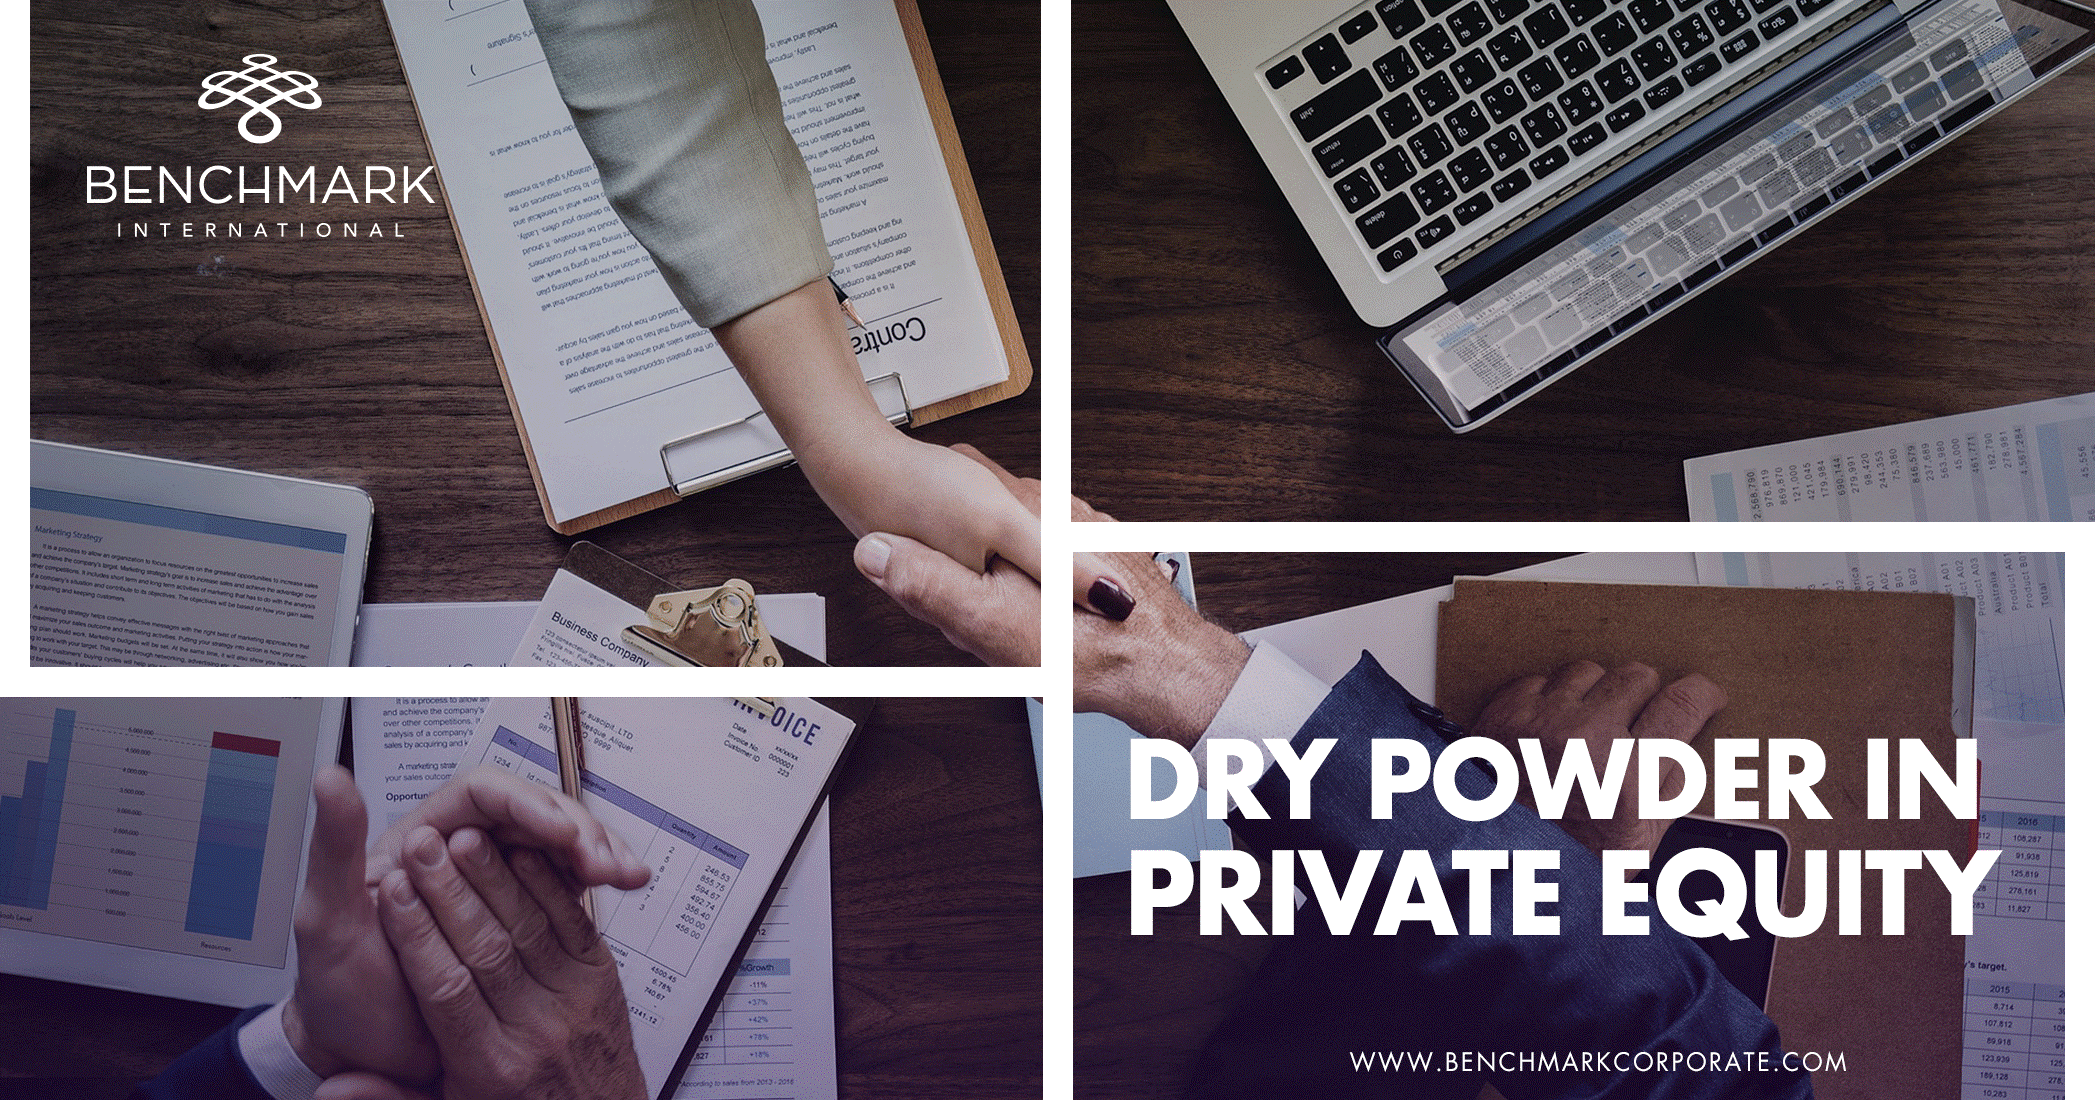 Dry Powder in Private Equity: A Struggle to Spend or a Welcome Resource?